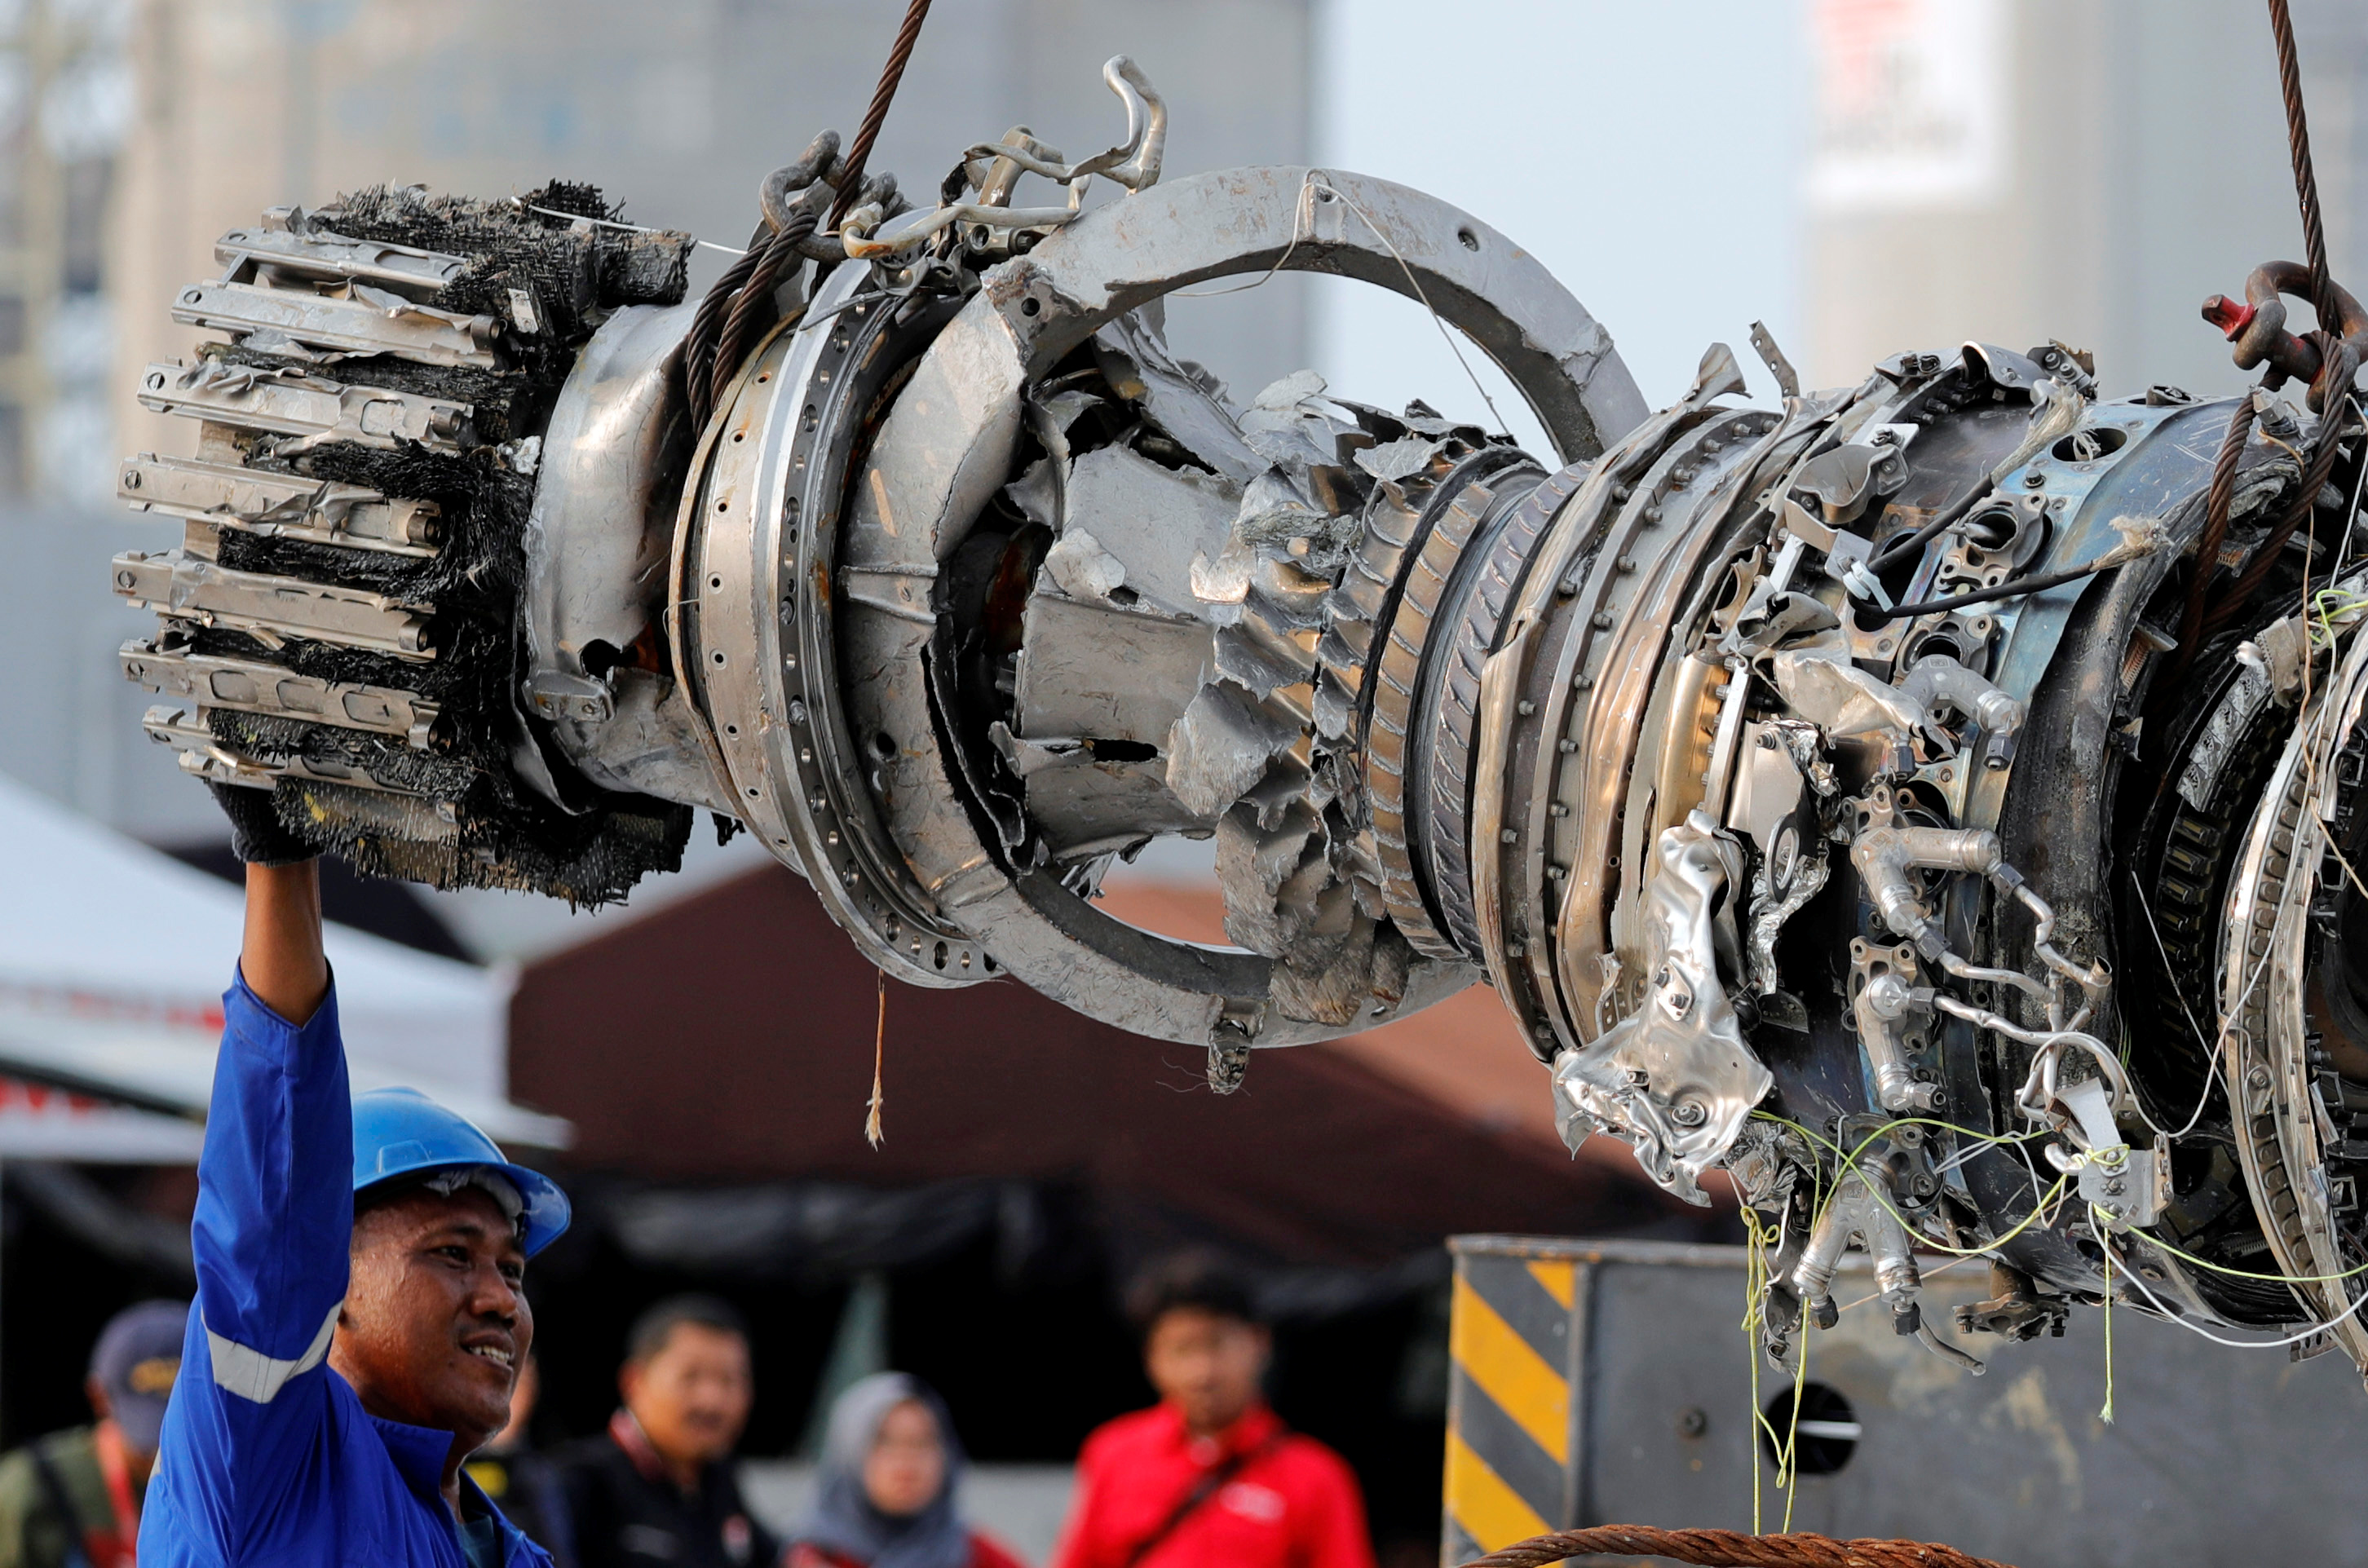 FILE PHOTO: A worker assists his colleague during the lifting of a turbine engine of the Lion Air flight JT610 jet, at Tanjung Priok port in Jakarta, Indonesia, November 4, 2018.  REUTERS/Beawiharta